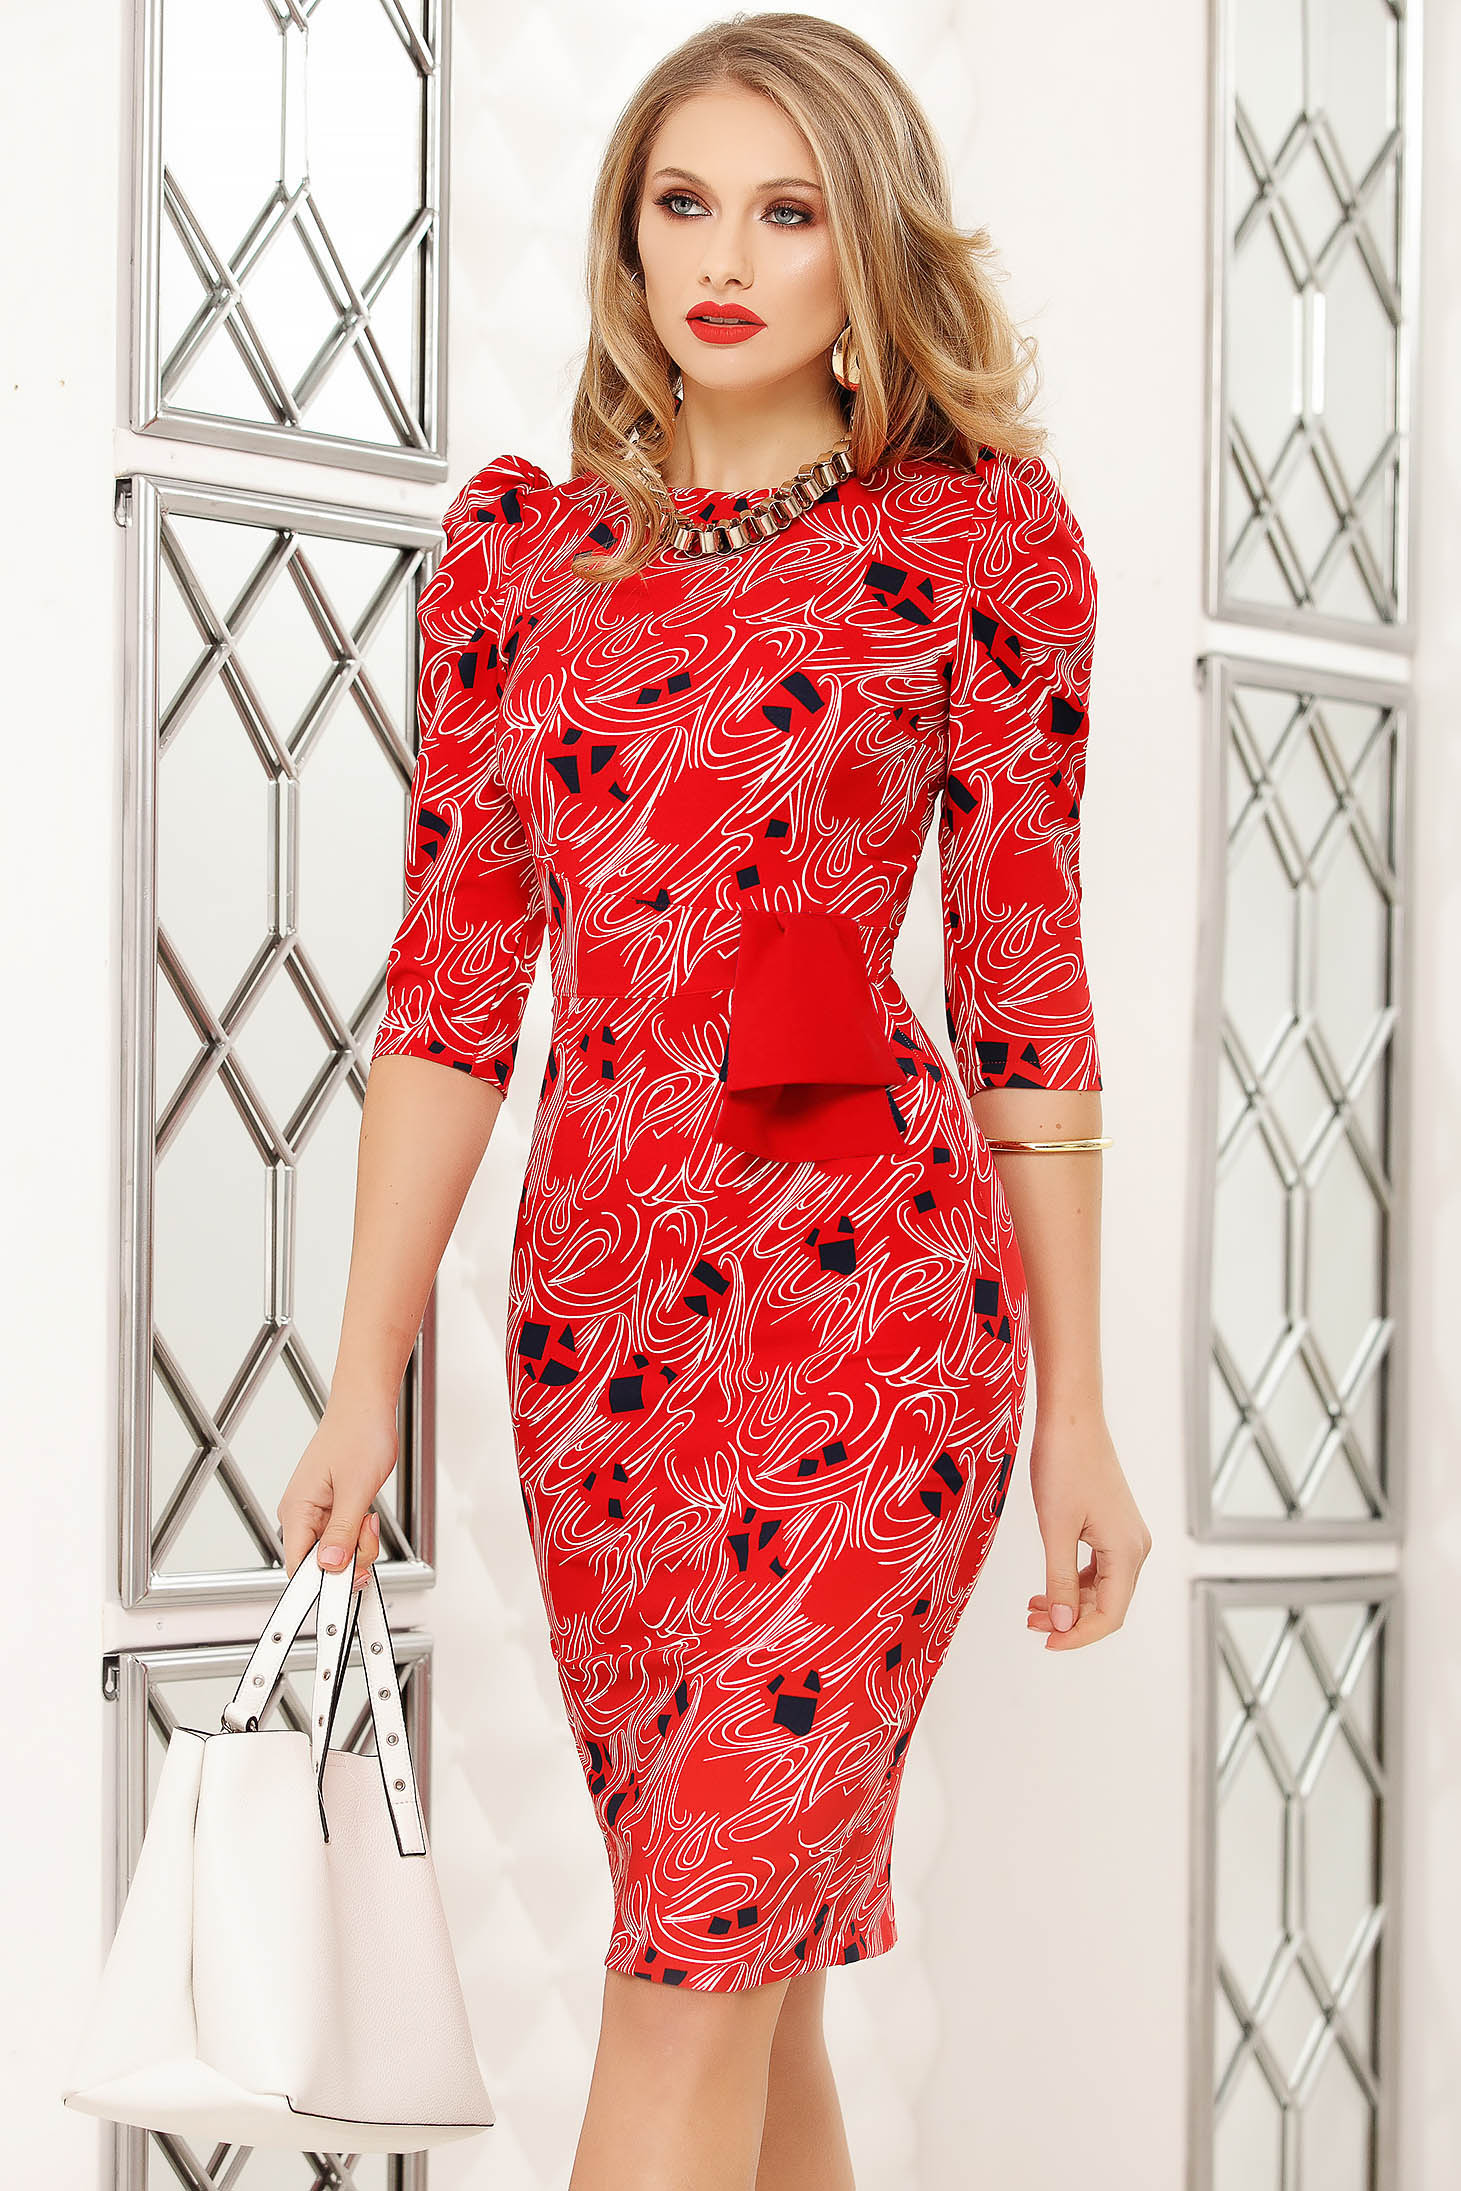 Red dress pencil midi office bow accessory with graphic details